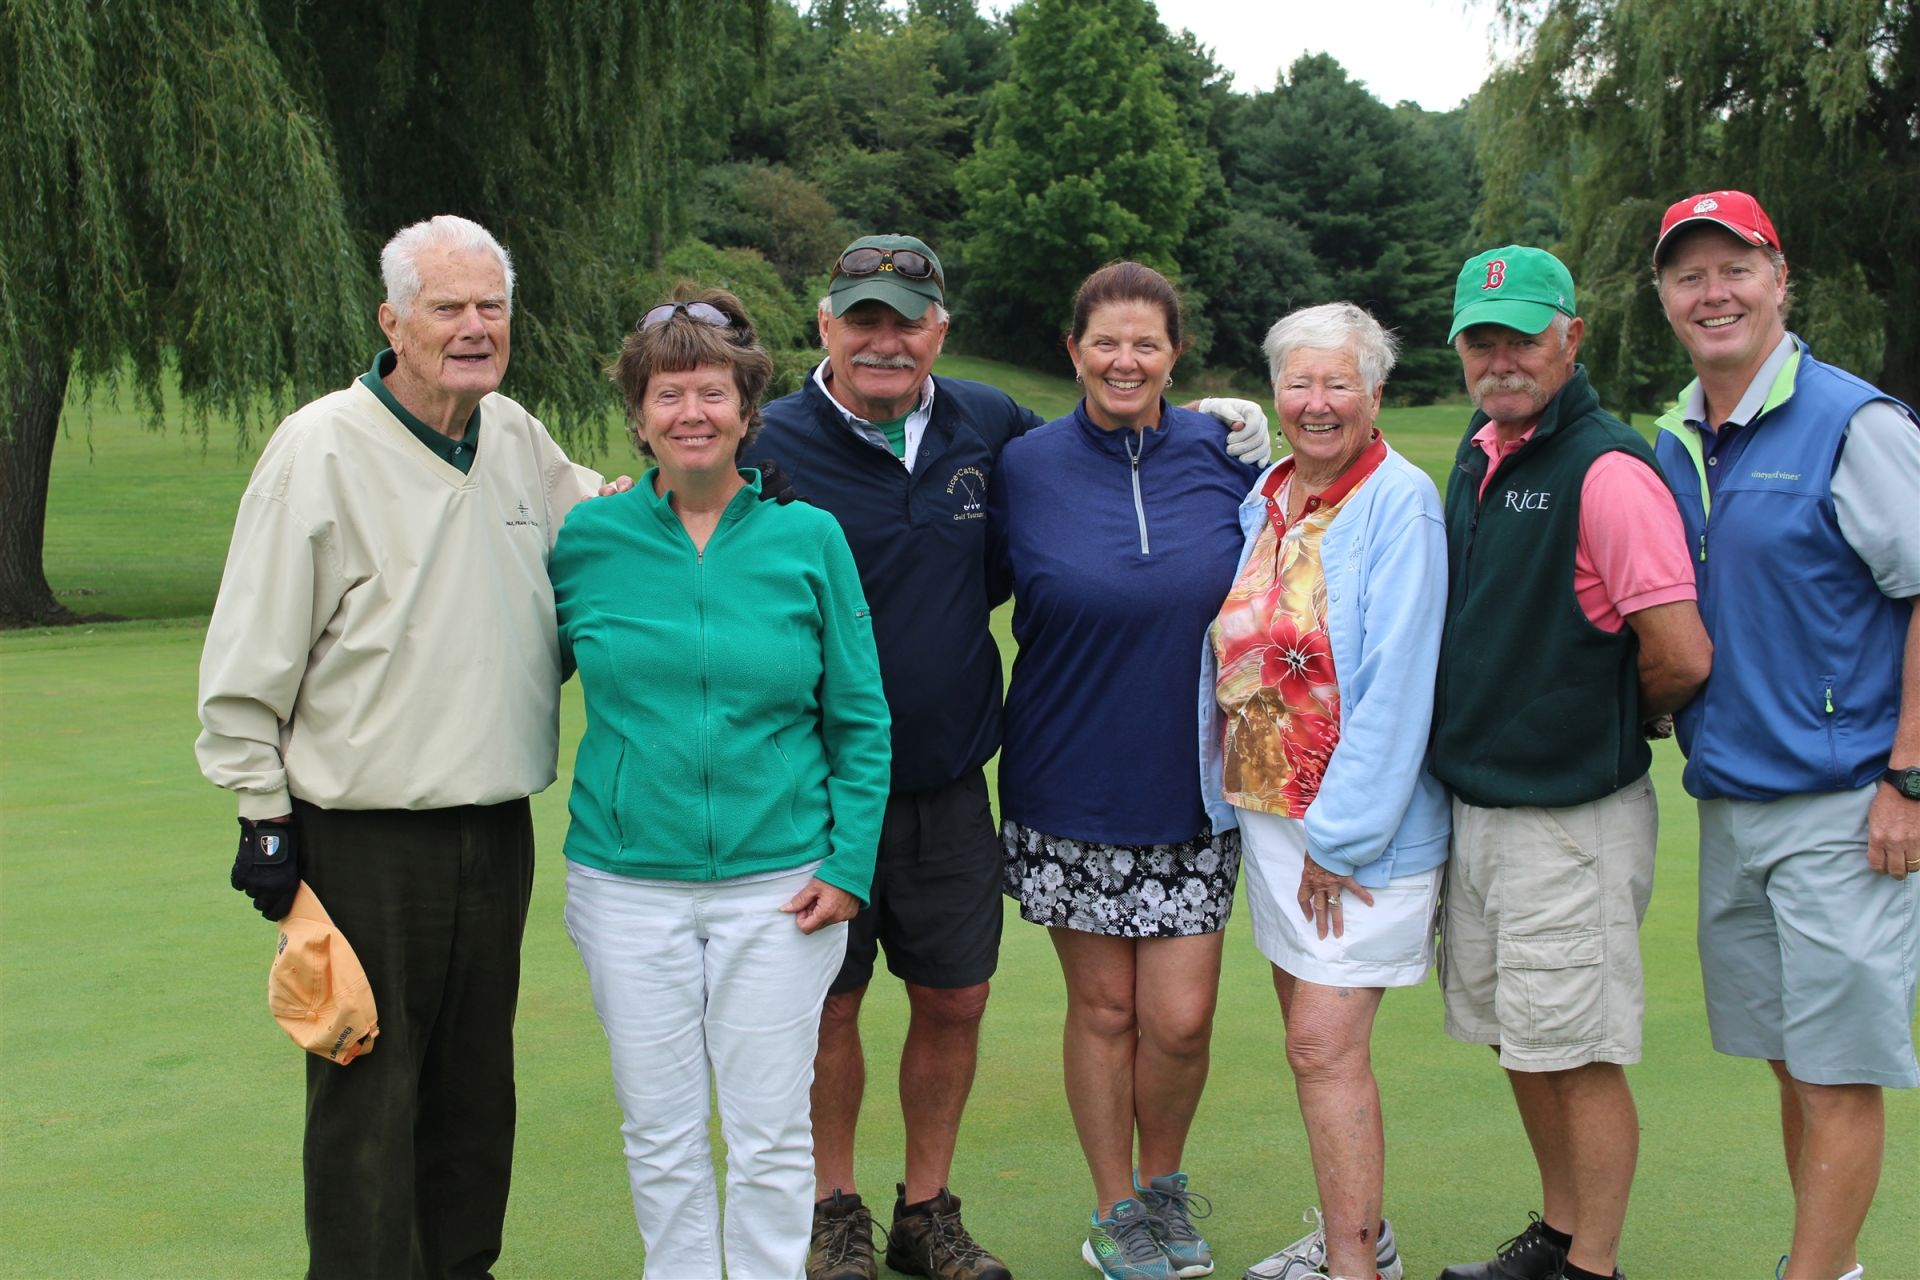 The Golf Tournament  was Susan Cain O'Brien's last hurrah as Alumni Relations Director.